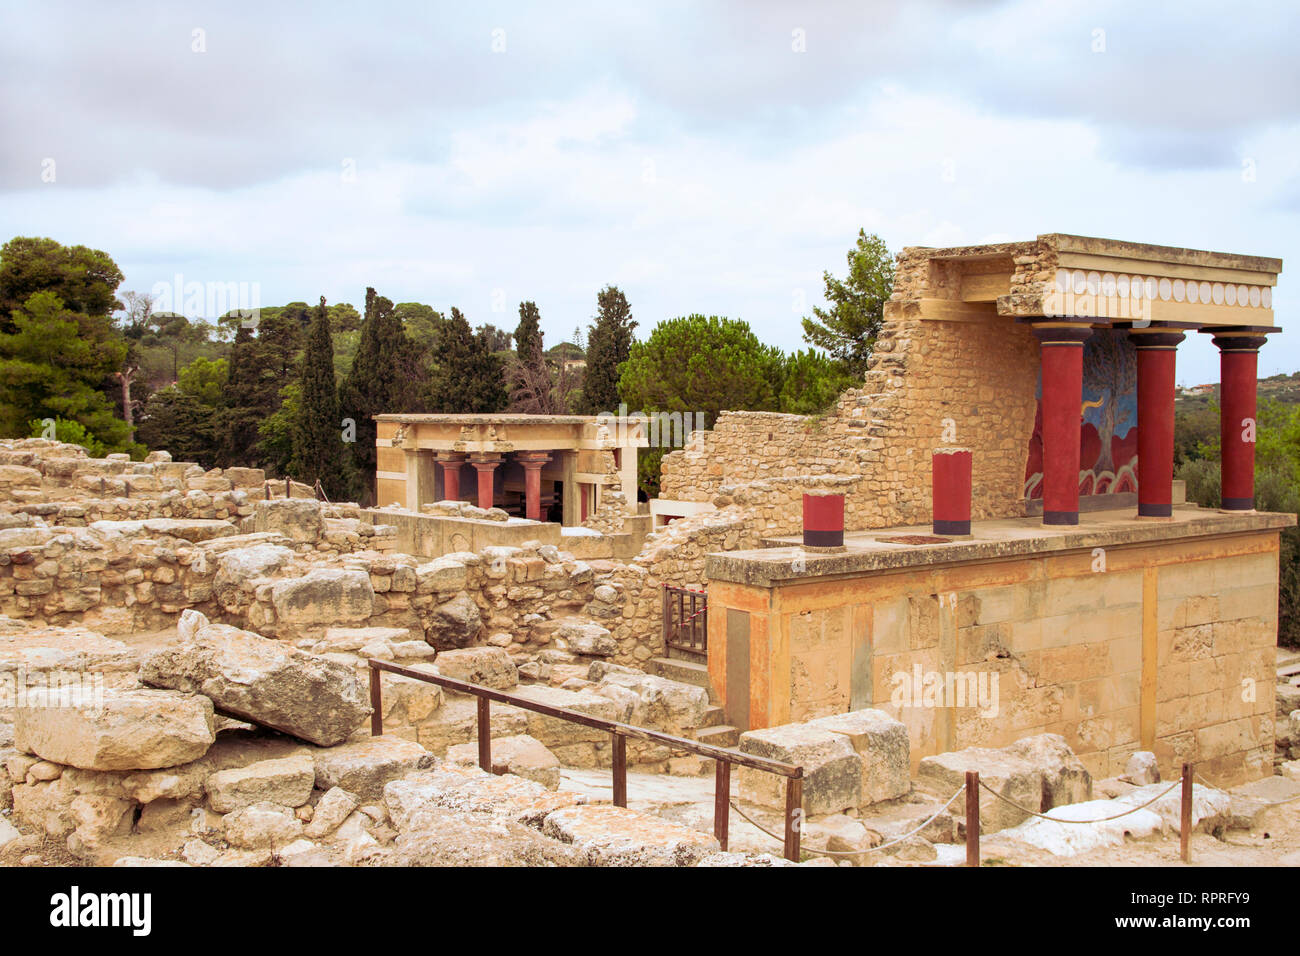 View on Red columns and ruins of  Minoan Knossos Palace. Wide shot. No people. Heraklion, Crete Island, Greece. - Stock Image